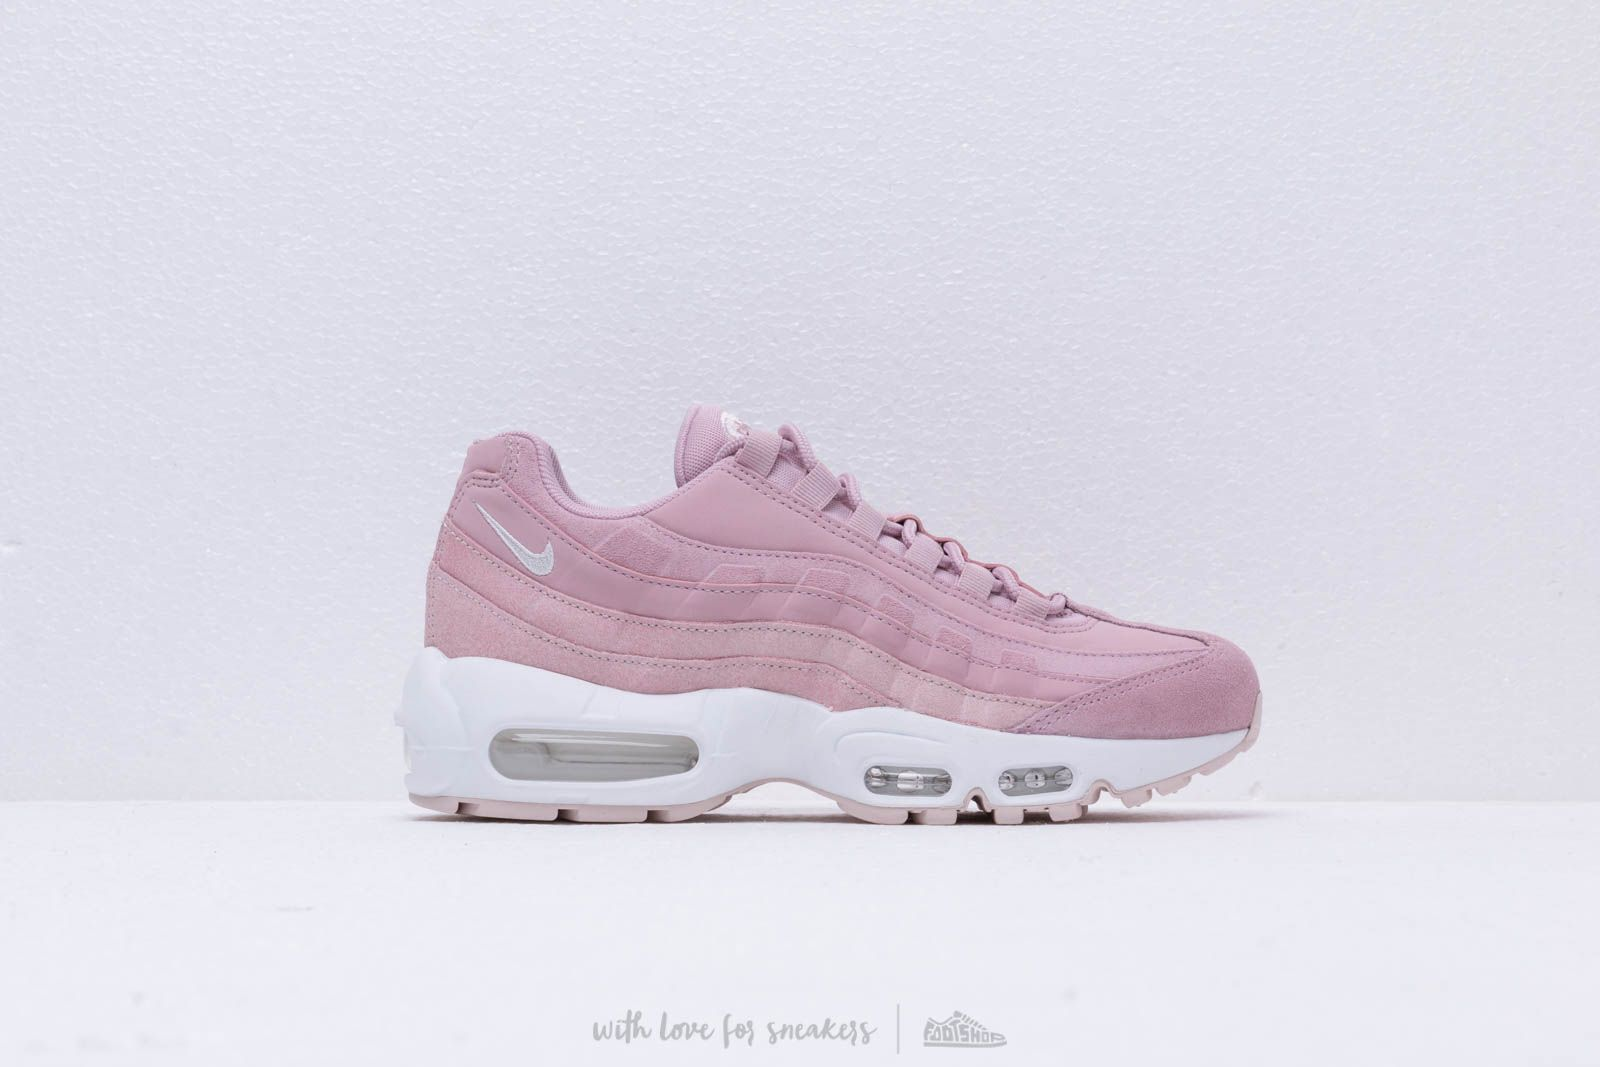 lowest price be52a ba9b4 Nike Wmns Air Max 95 Prm Plum Chalk  Barely Rose-Summit White at a